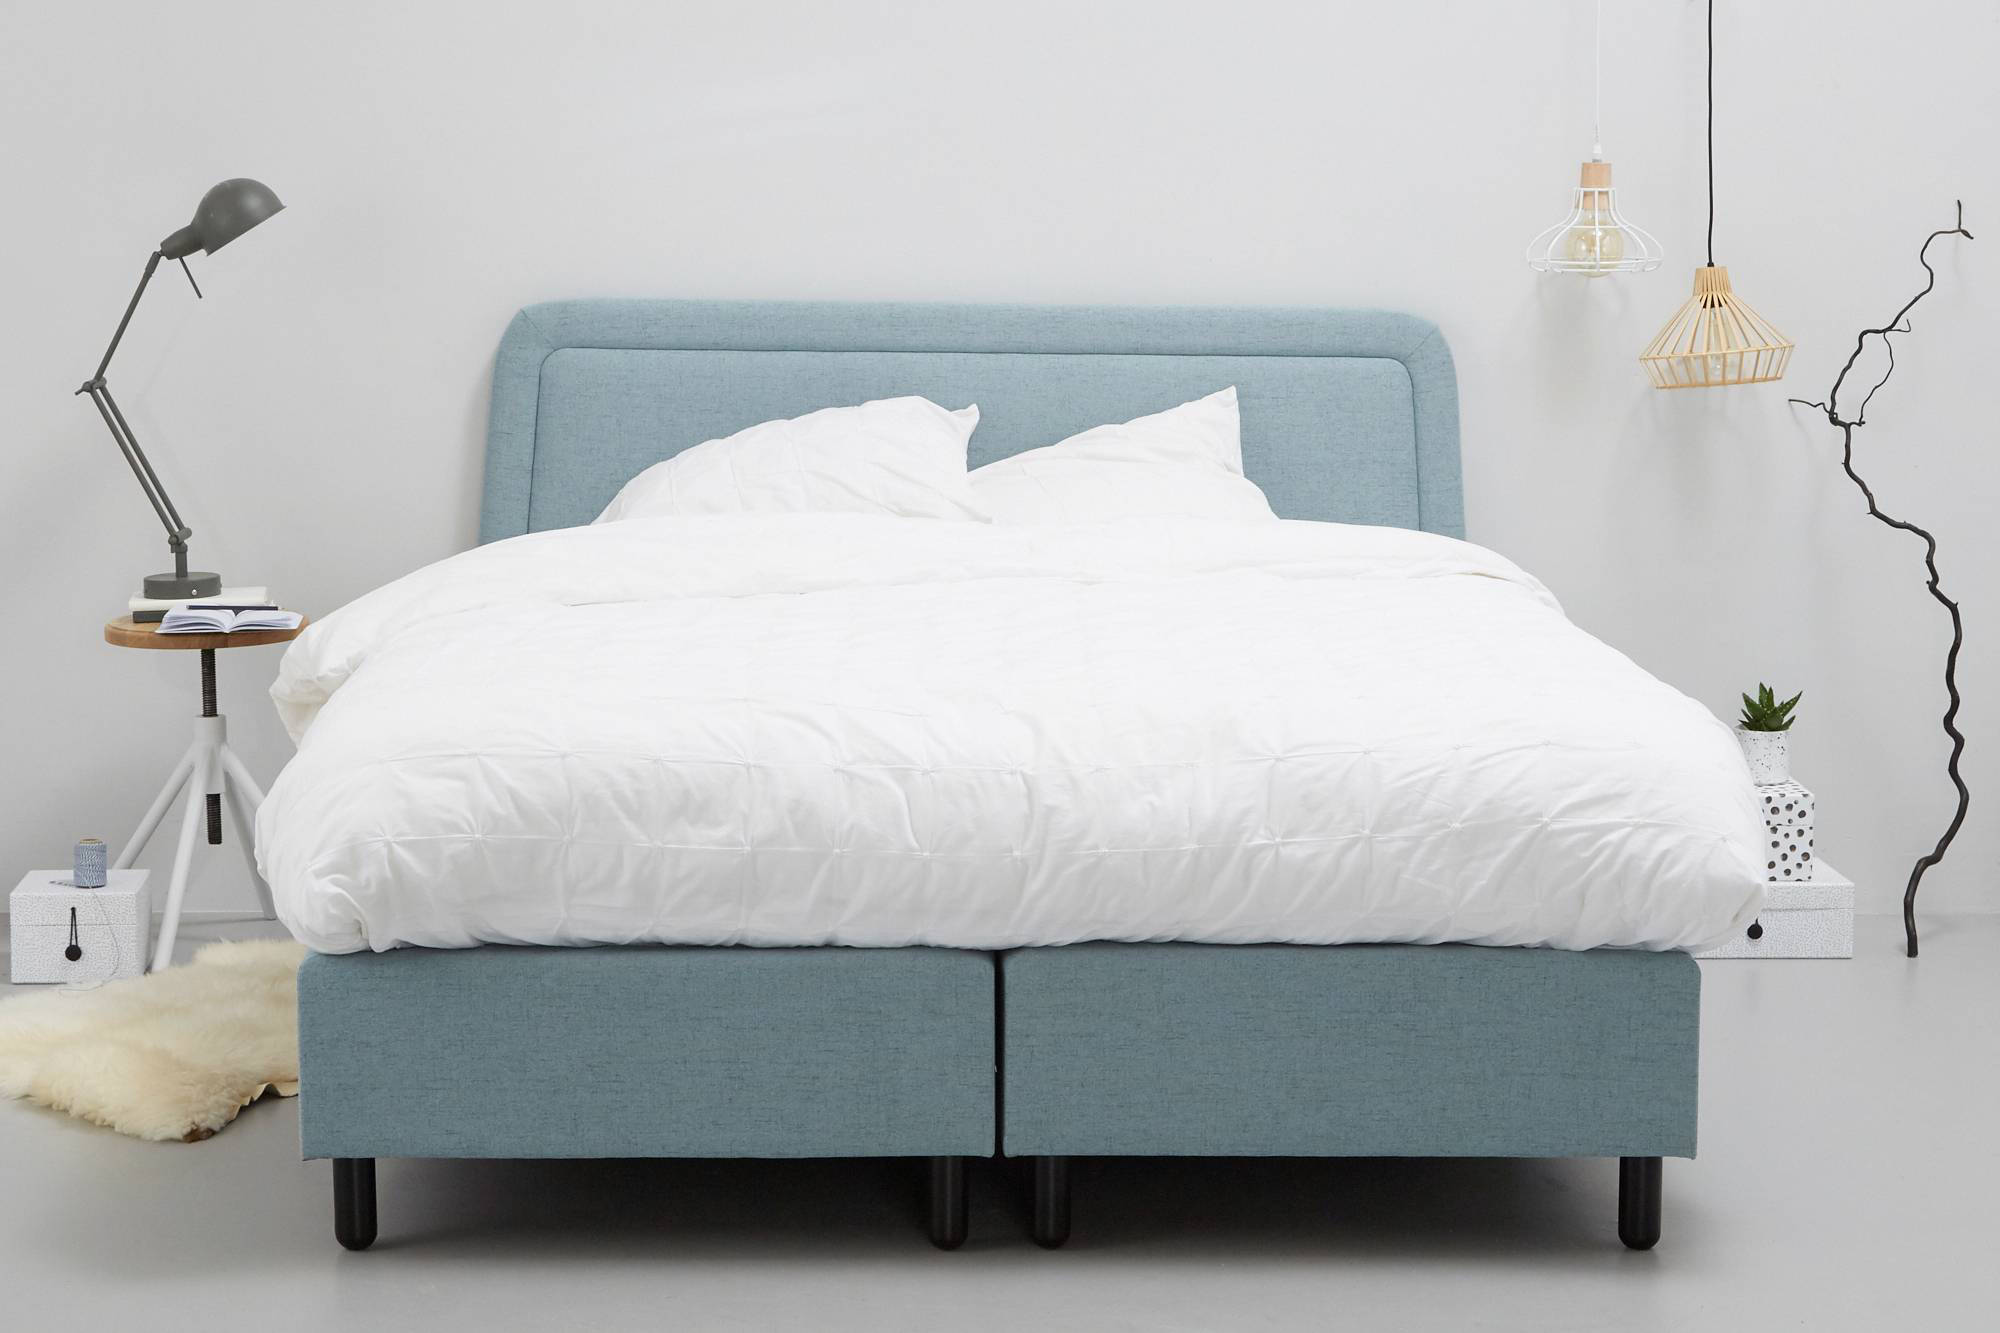 whkmp's own complete boxspring Boden